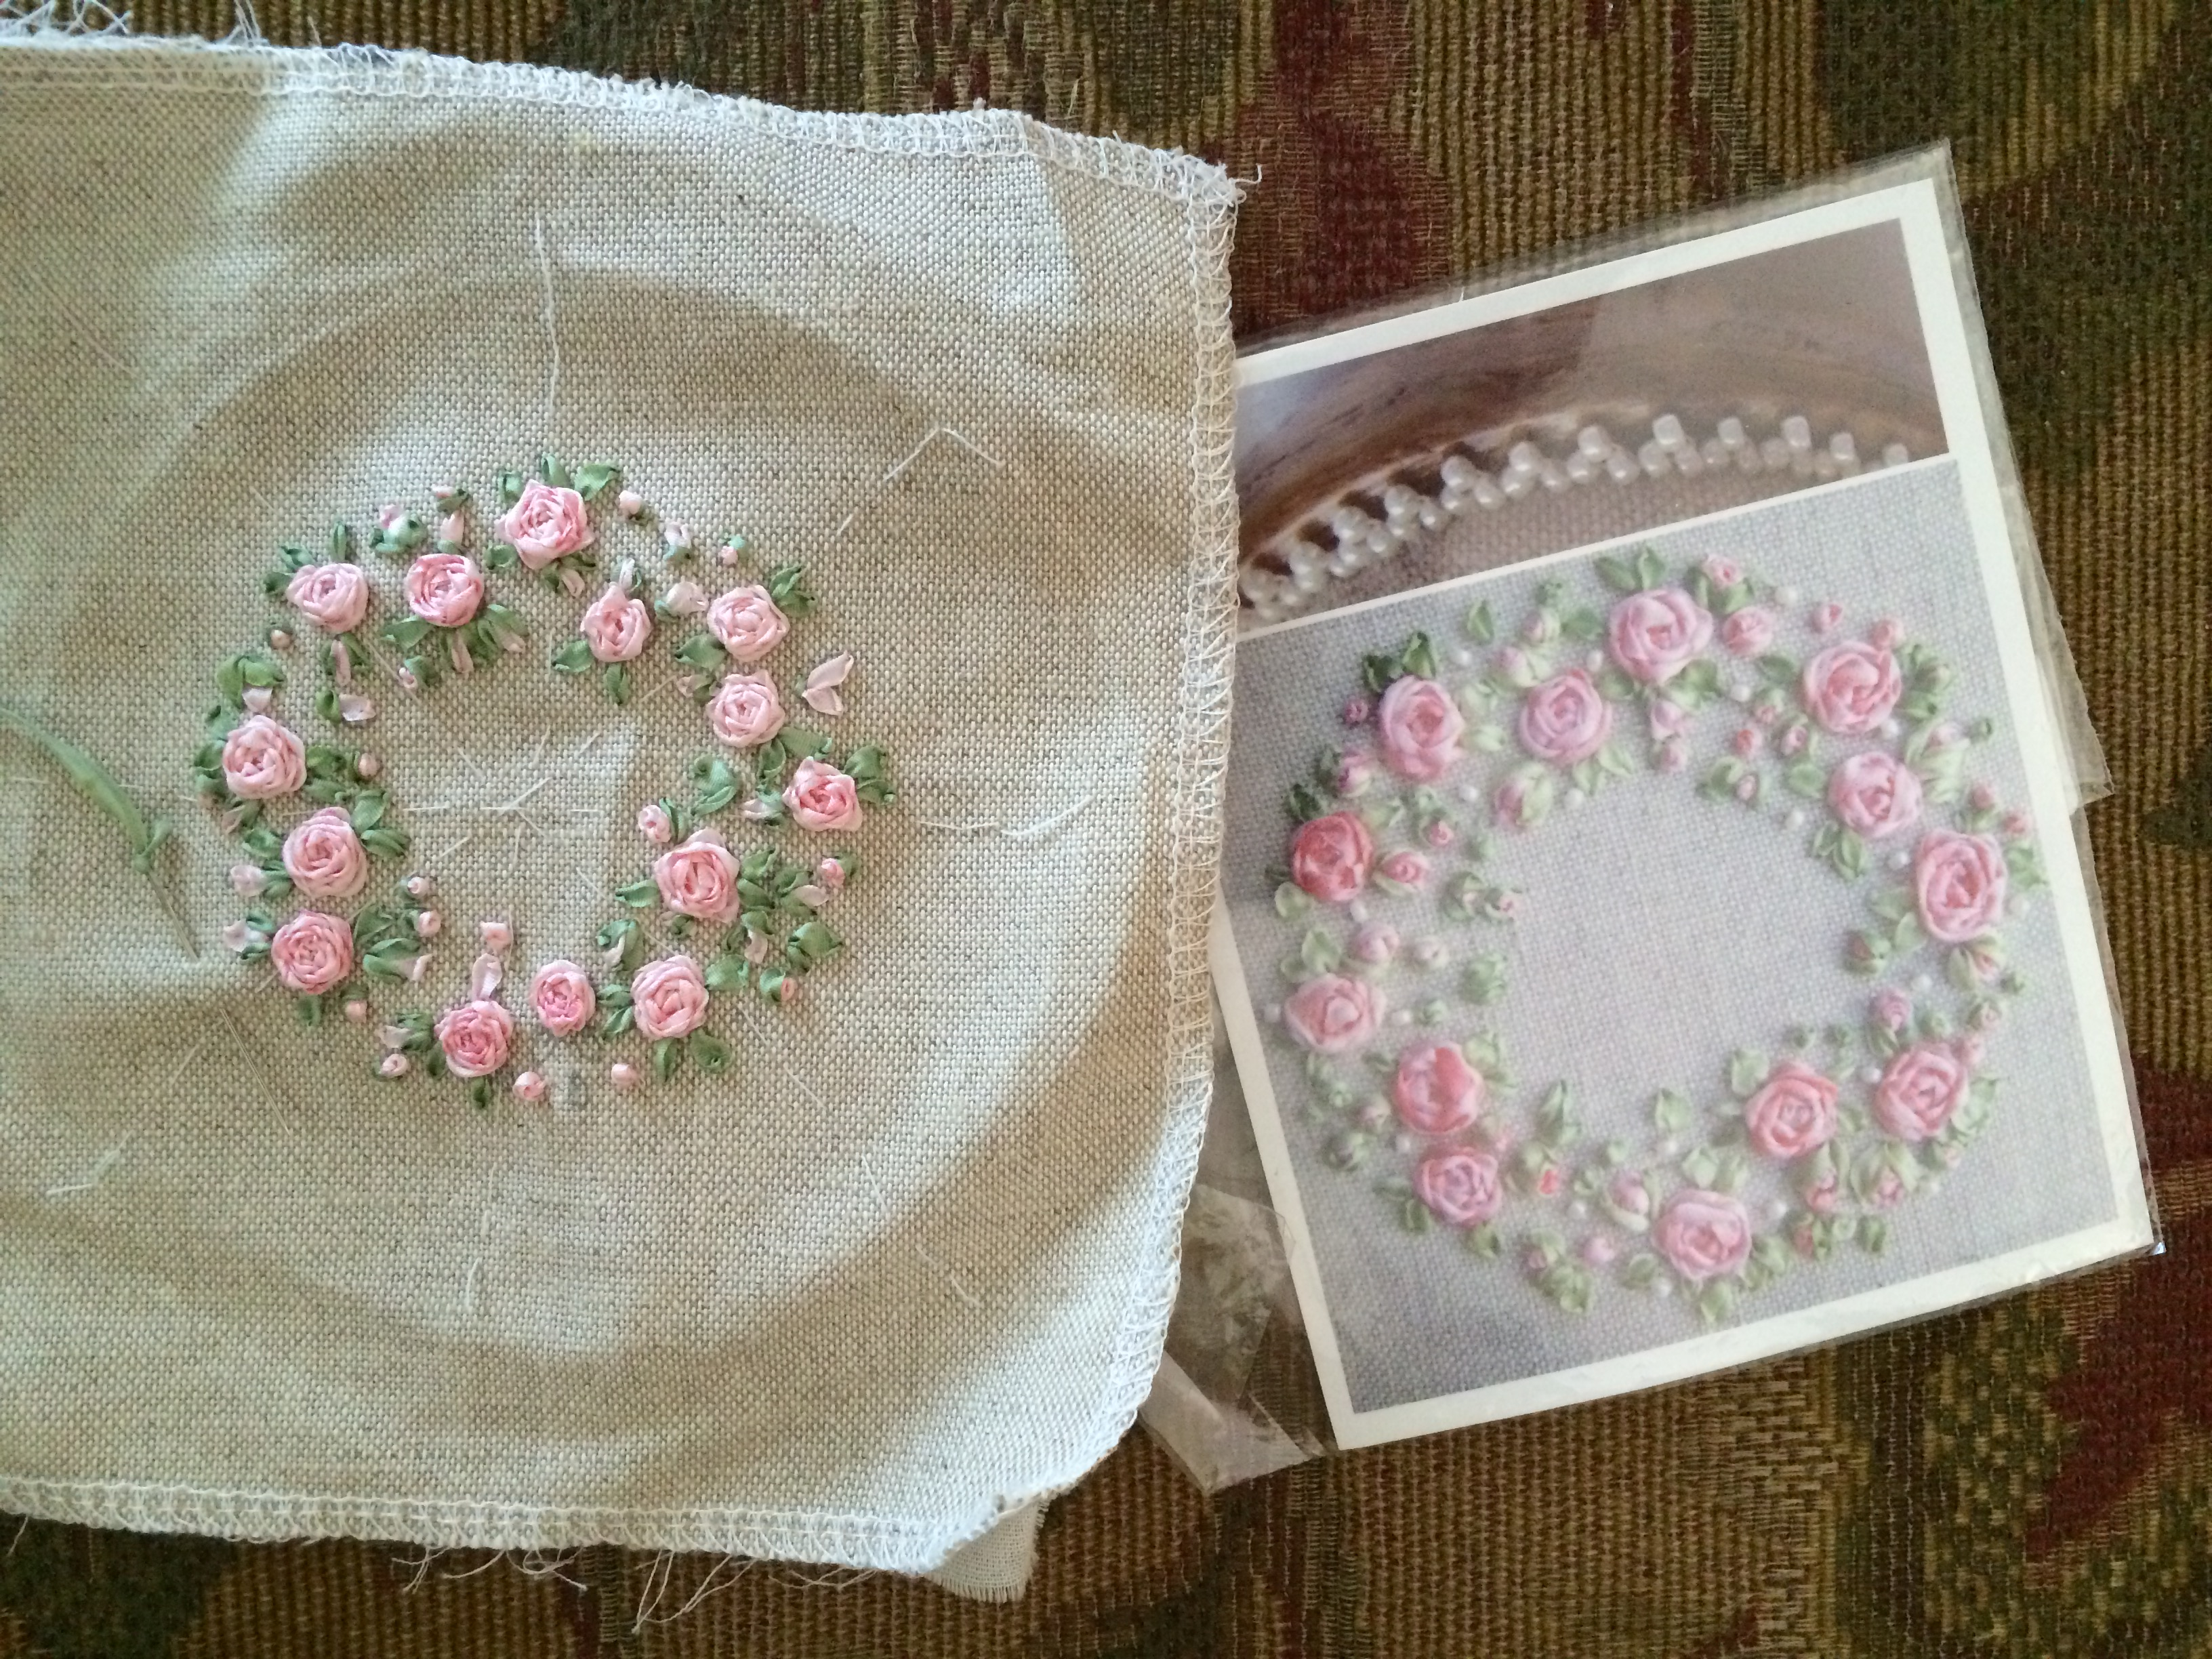 Ribbon embroidery bedspread designs - Ribbon Rose Pincushion1